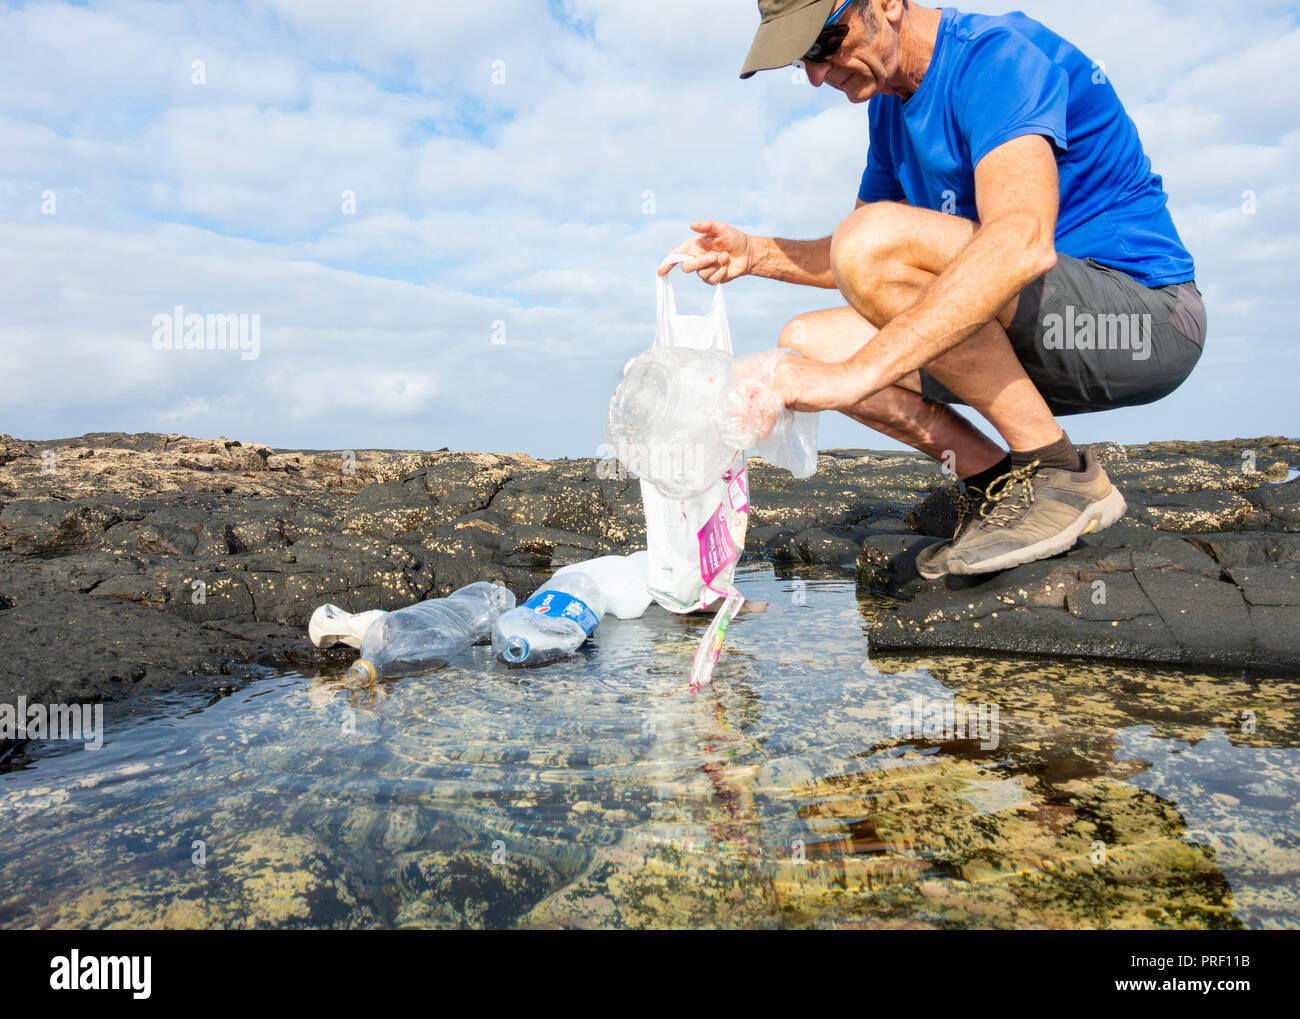 A Plogger/jogger collects plastic rubbish from beach rockpool during his morning run - Stock Image